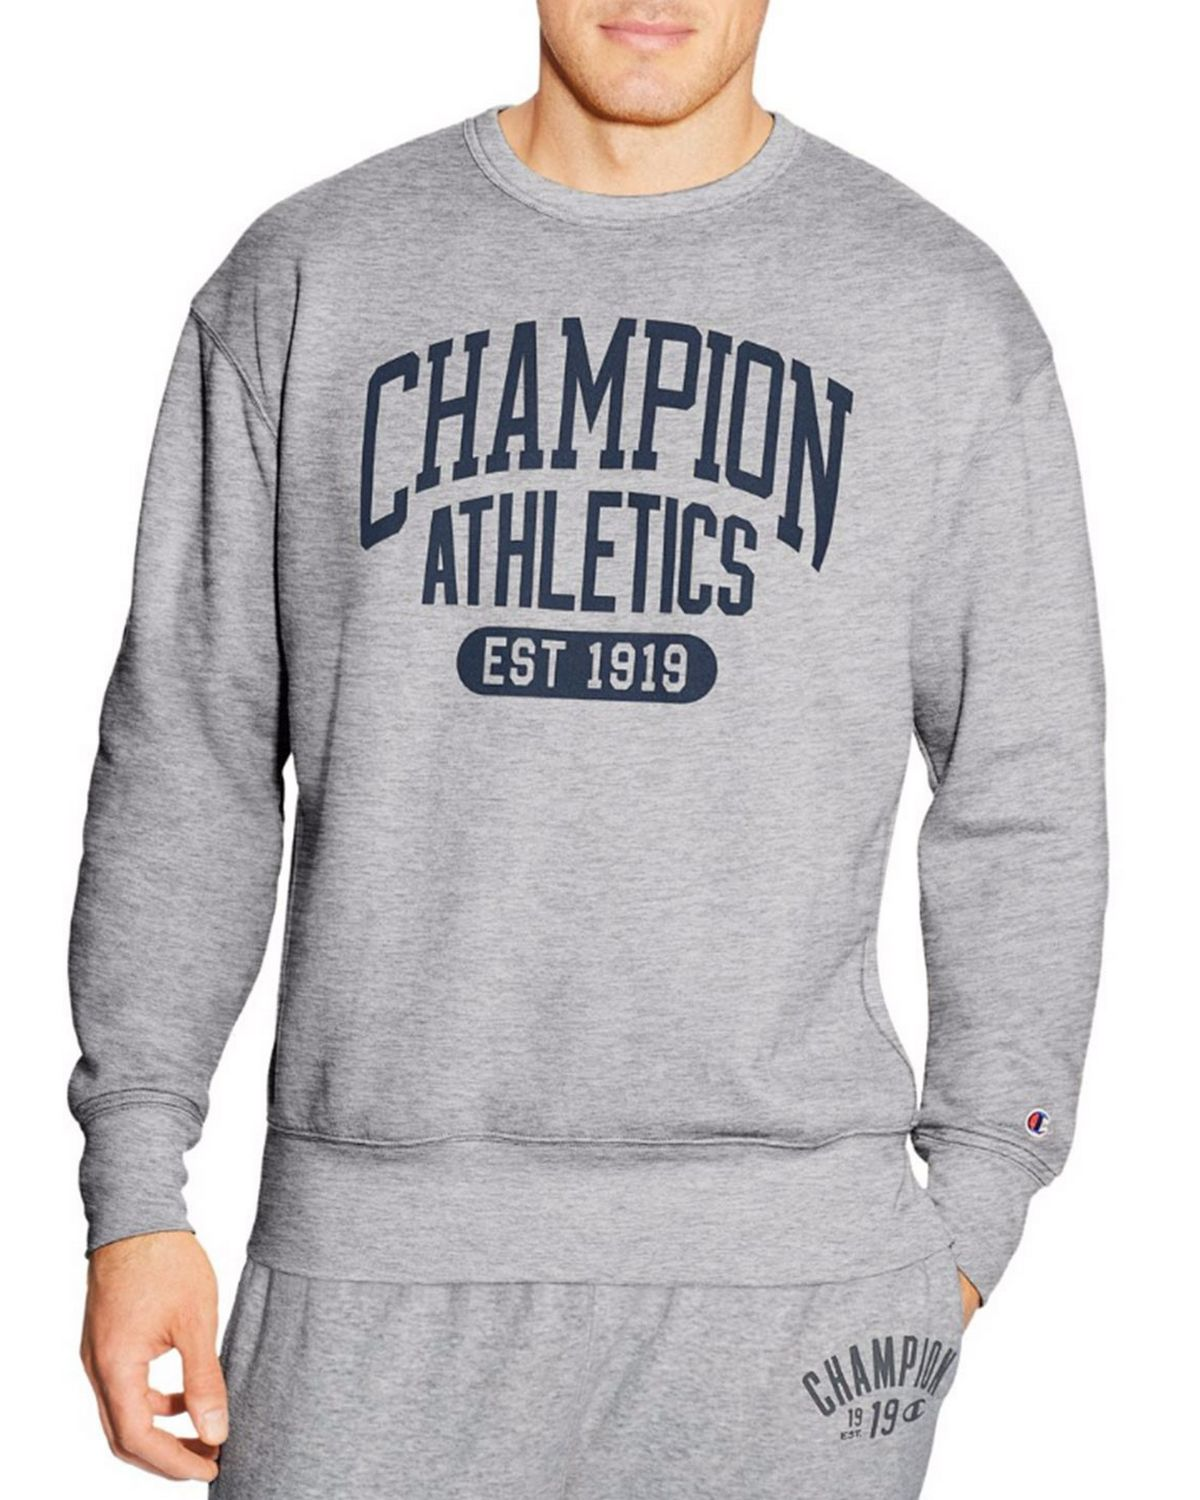 Champion S1230 Mens Crew Sweatshirt - Oxford Grey - S S1230